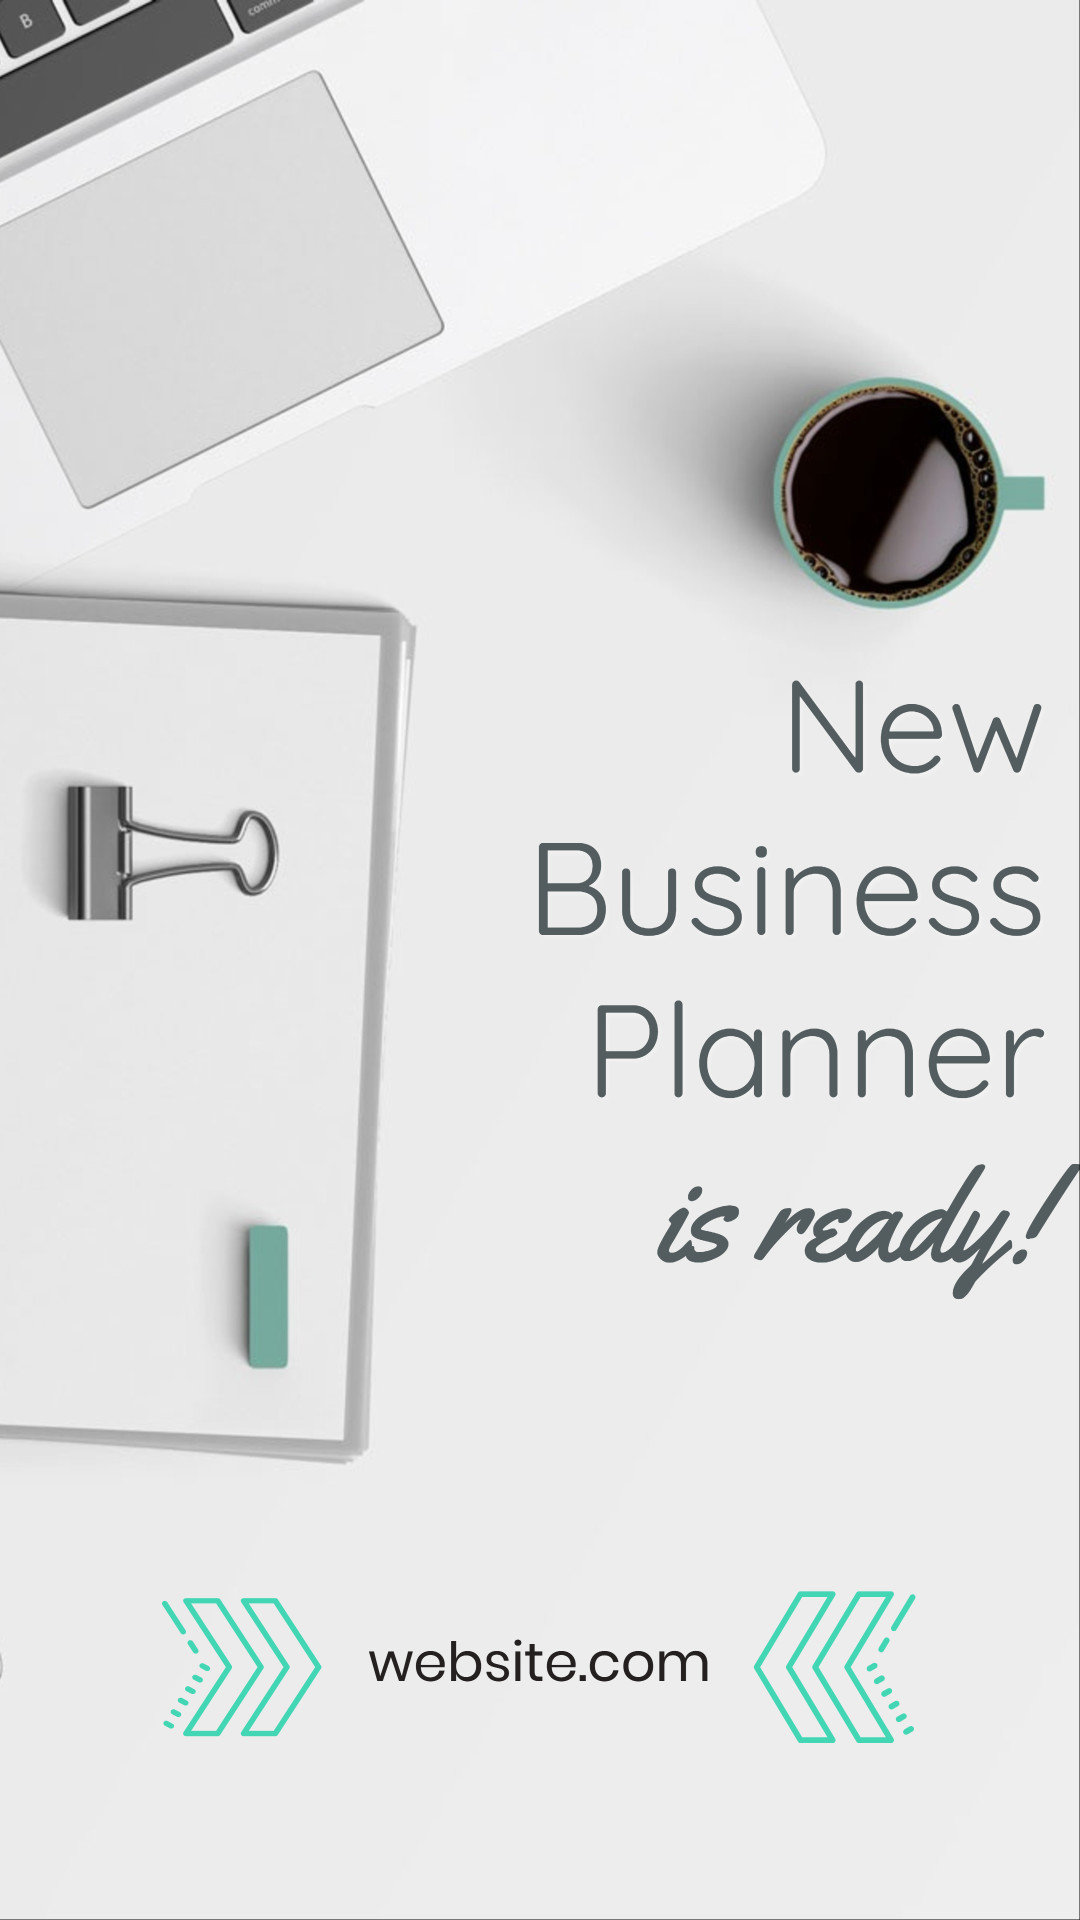 New business planner is ready